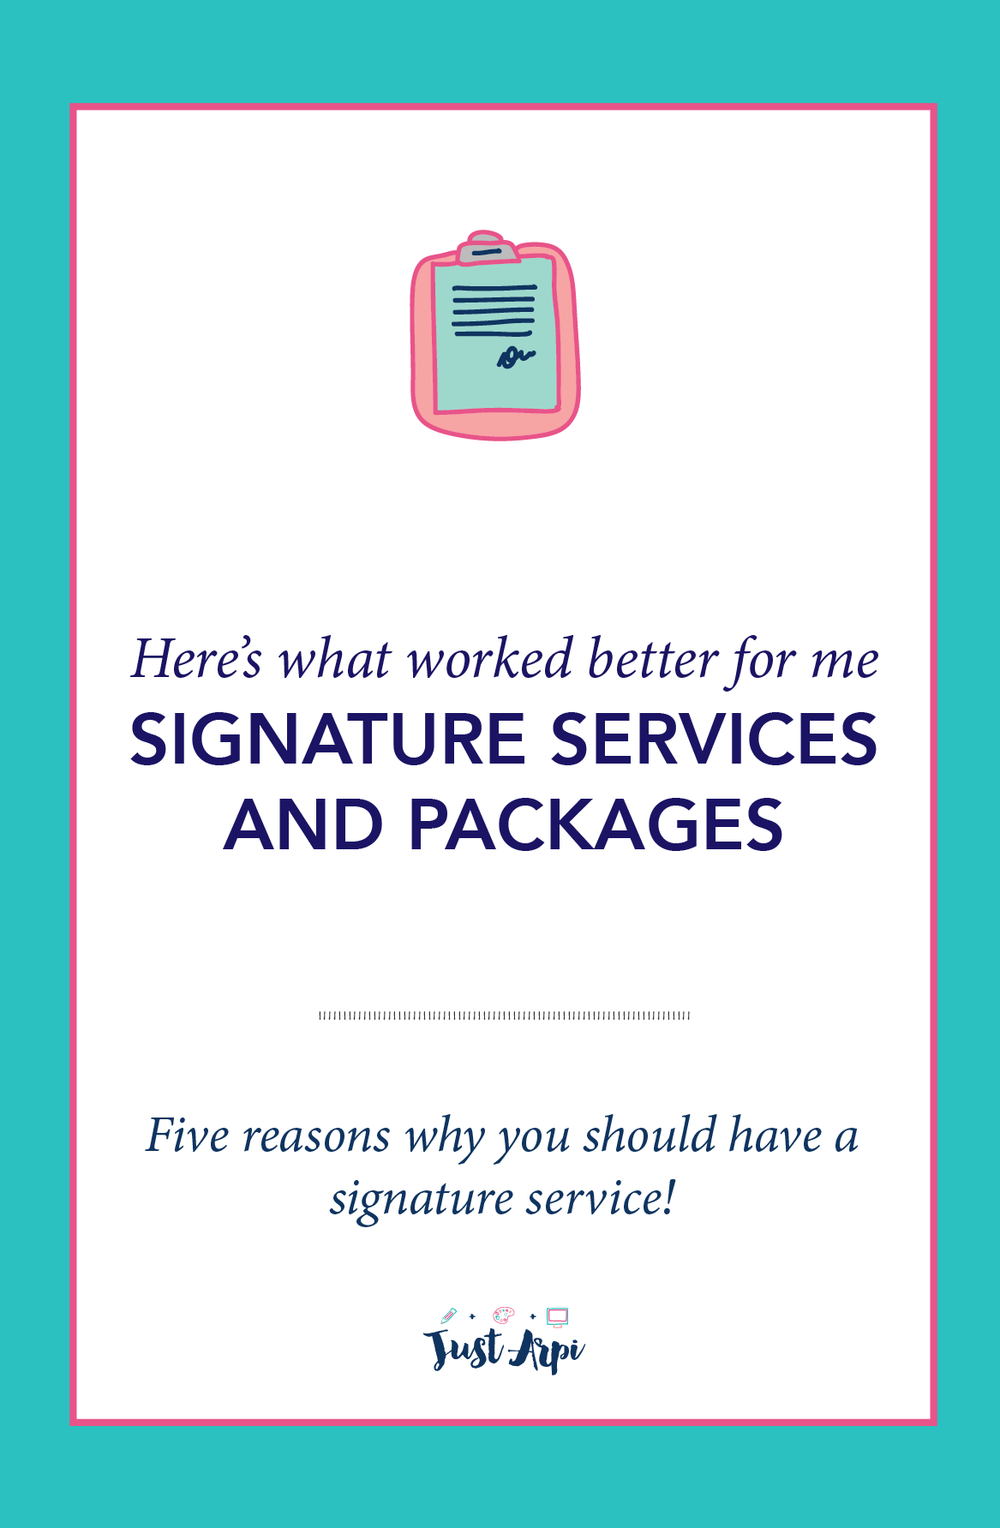 Here's what for me and my business. Signature services and packages! I am talking about five reasons why you should a signature service and talk about the power of mentoring!